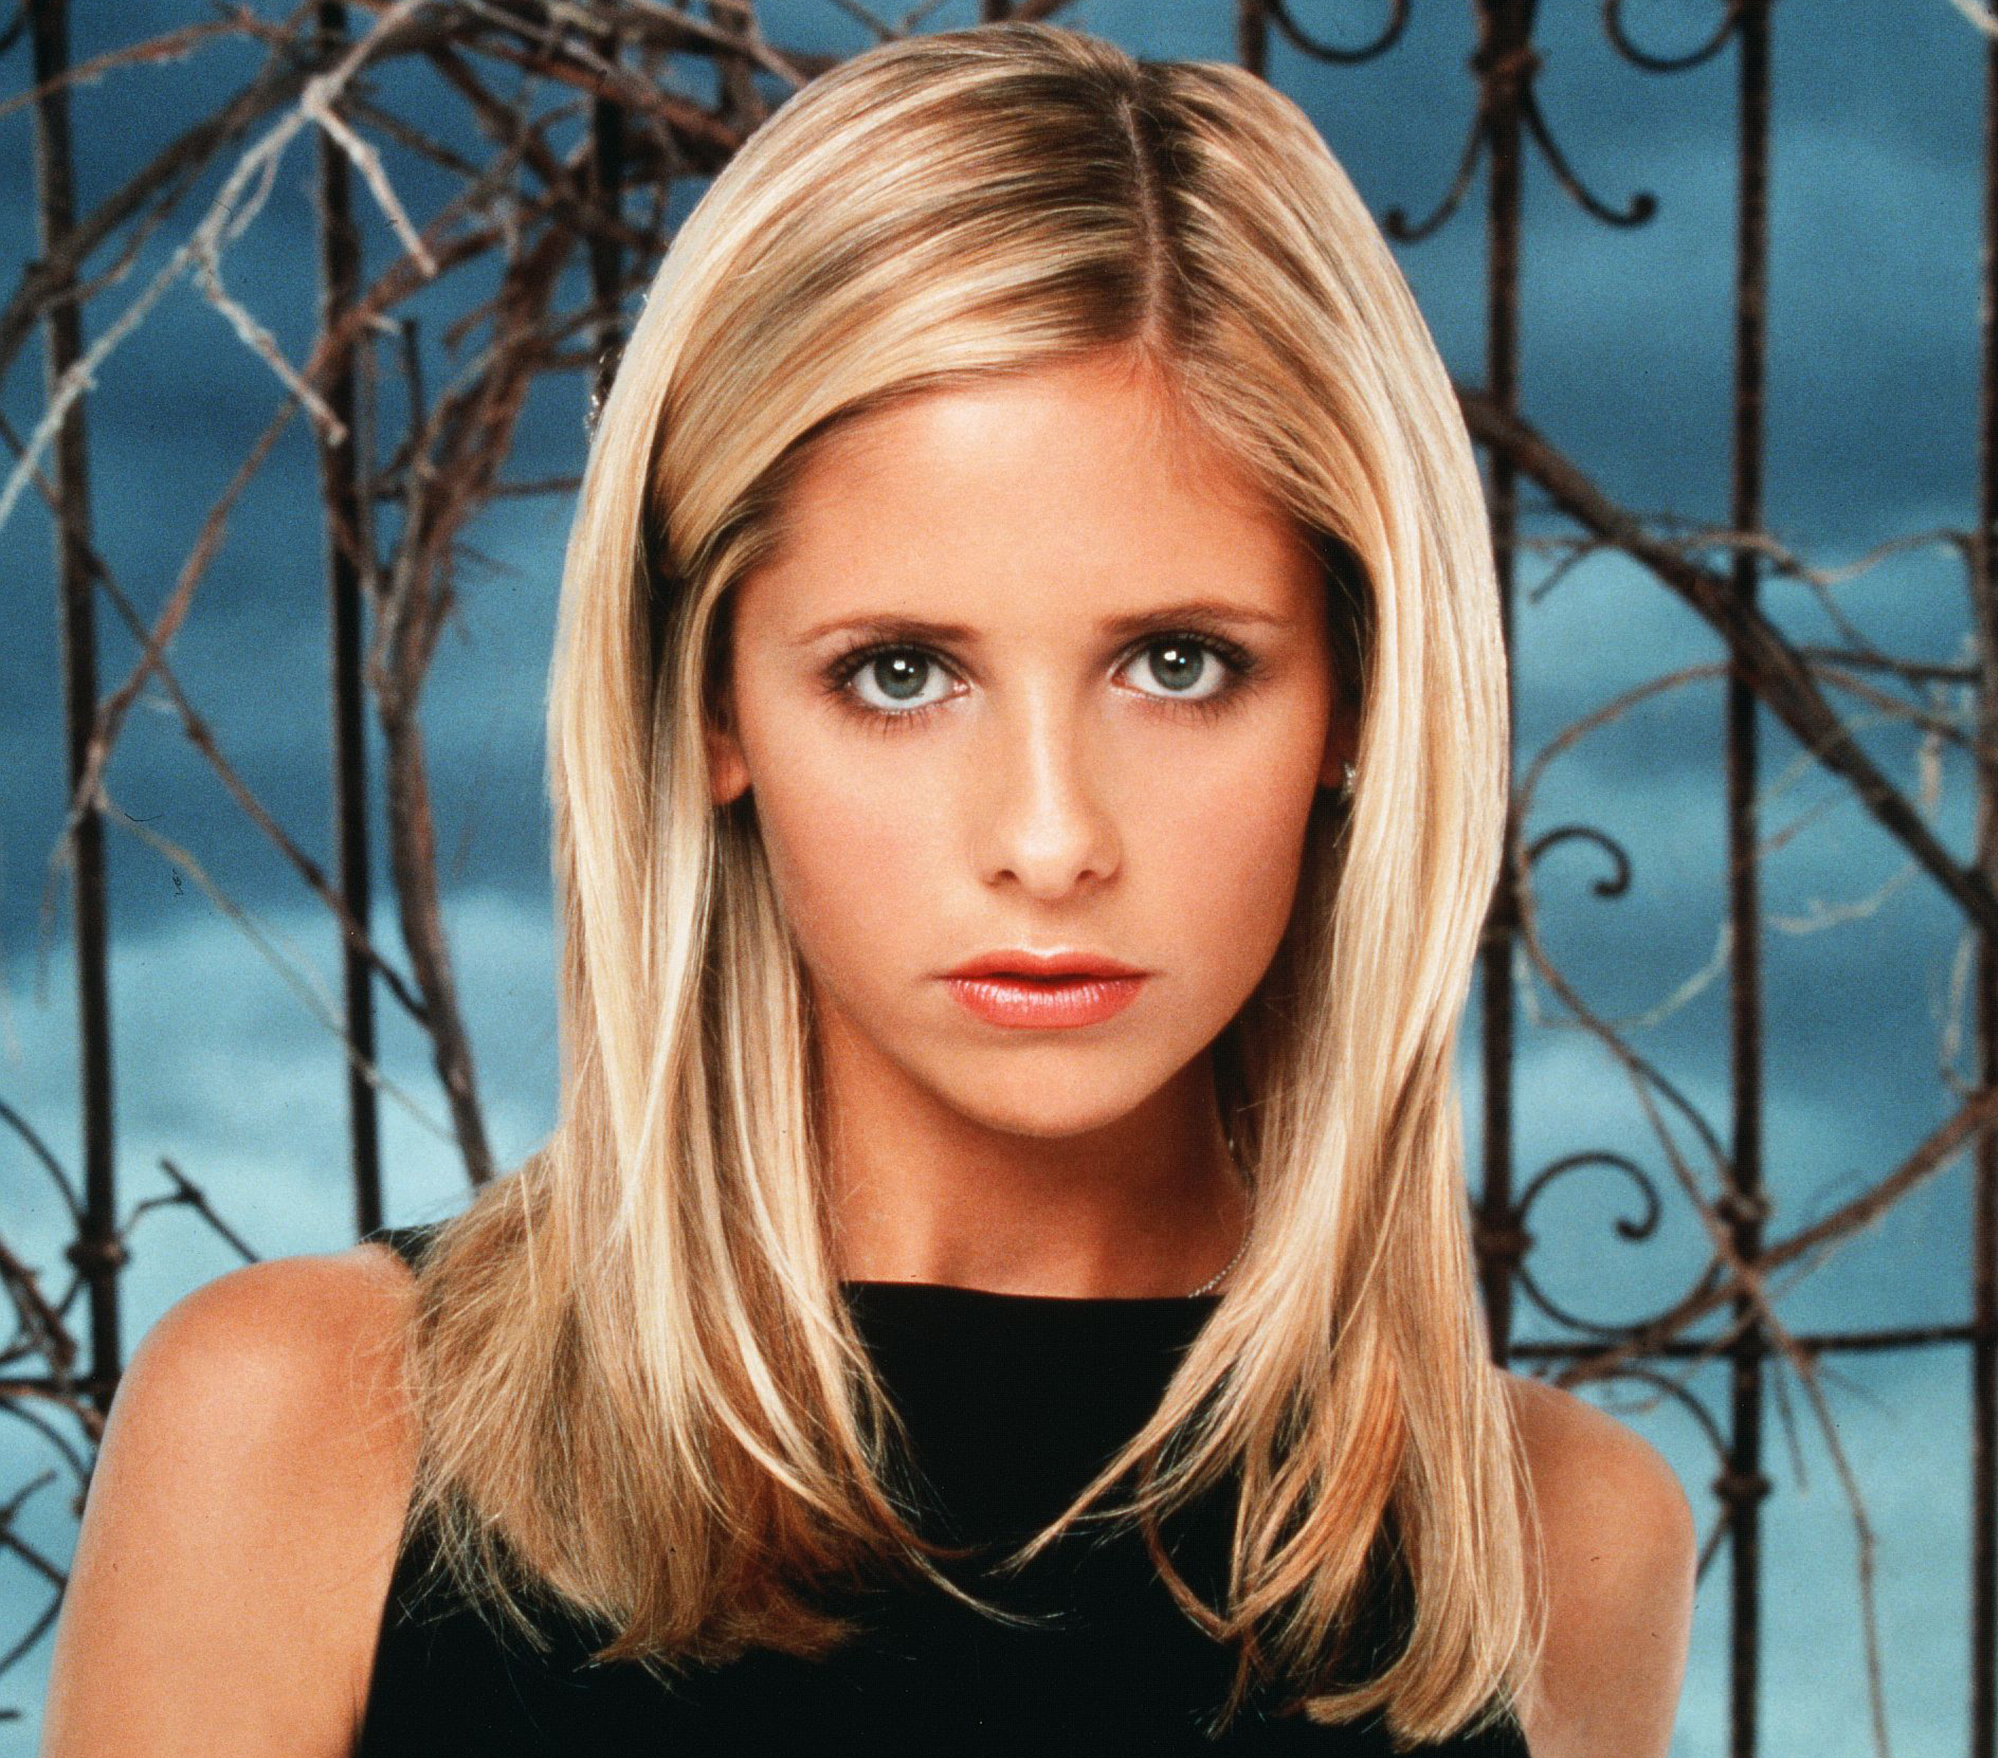 image 1 e1613734208709 25 Things You Didn't Know About Buffy The Vampire Slayer